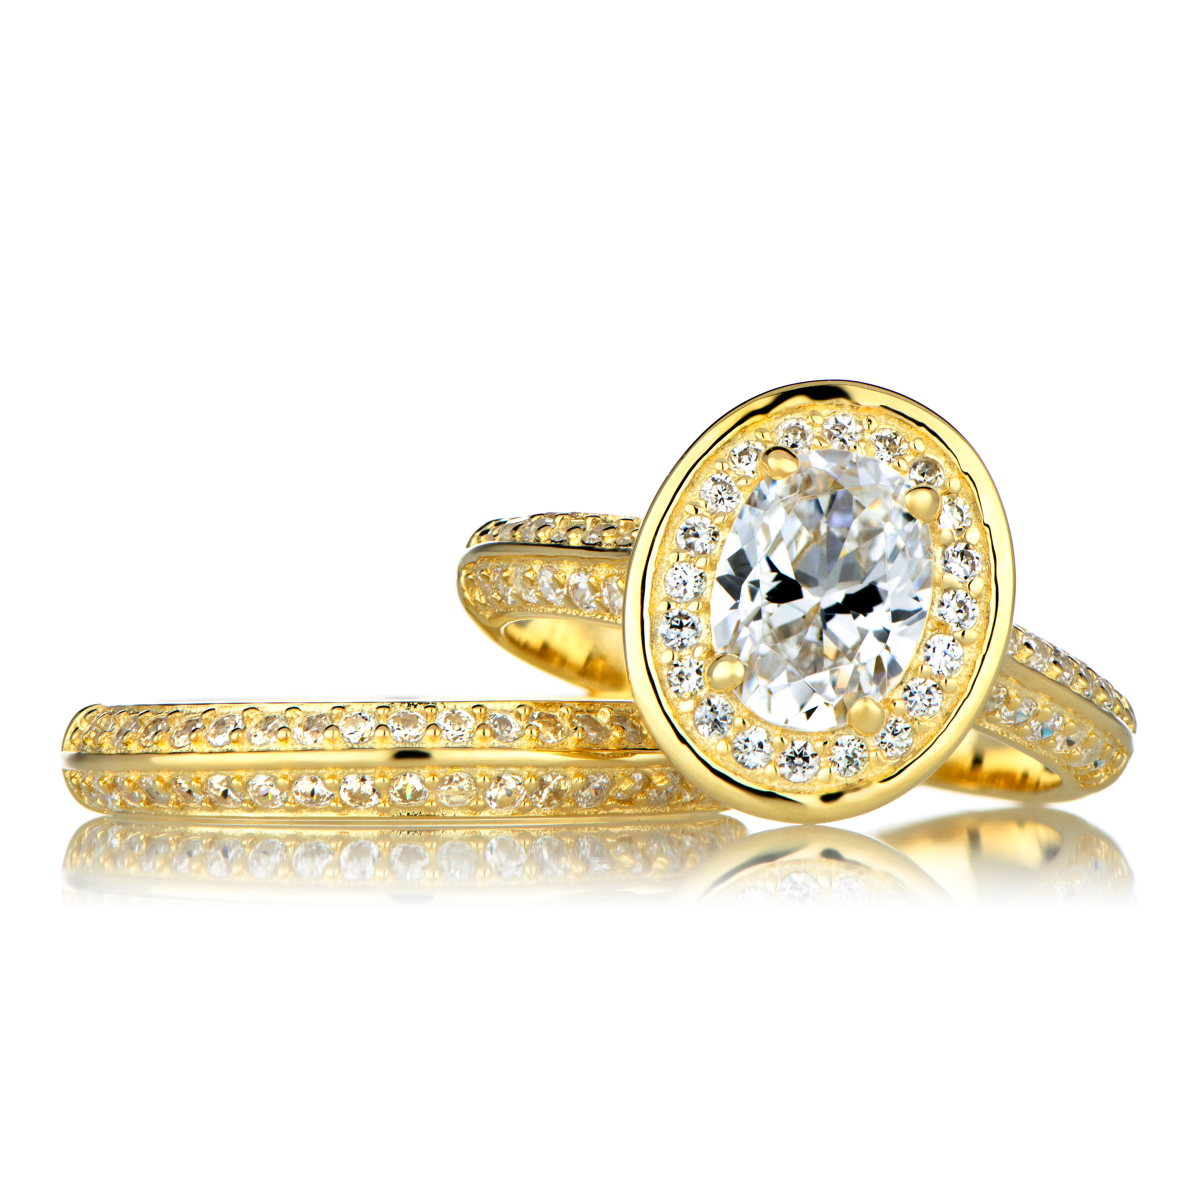 14k yellow white gold leaves round cz wedding ring set gold wedding ring sets Accent your life with beautiful white and yellow gold wedding rings